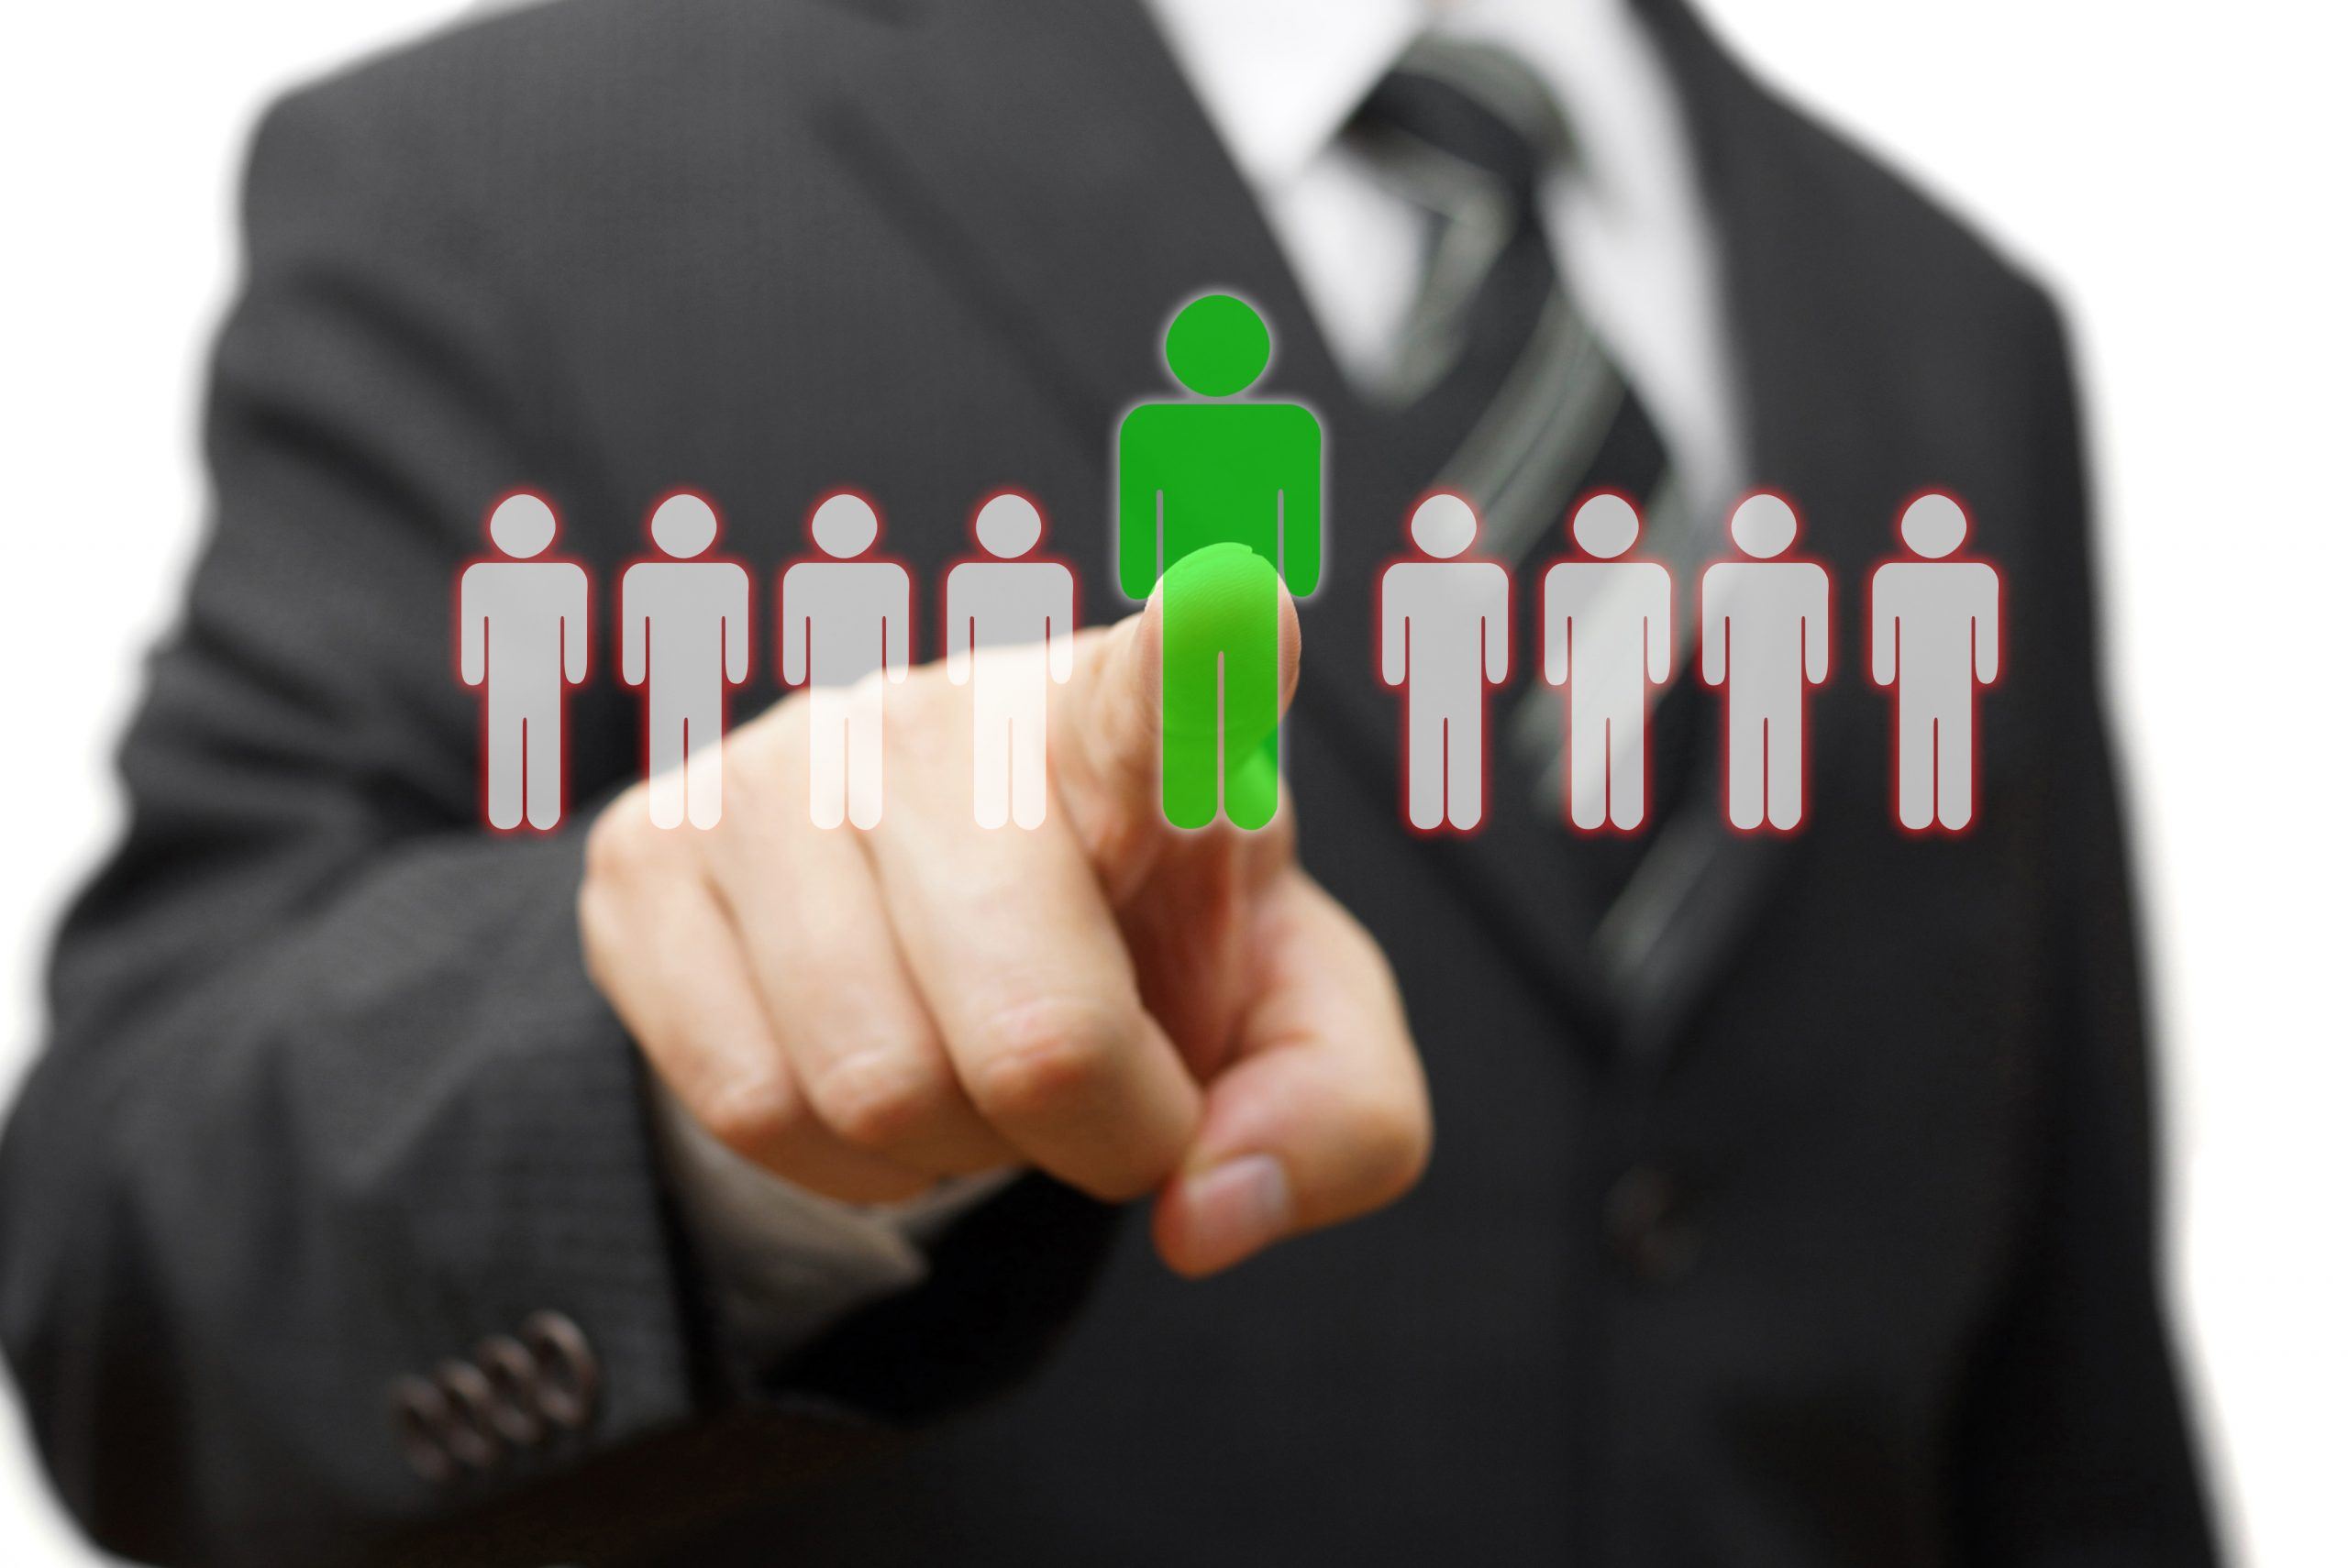 6 Tips for Hiring During Covid